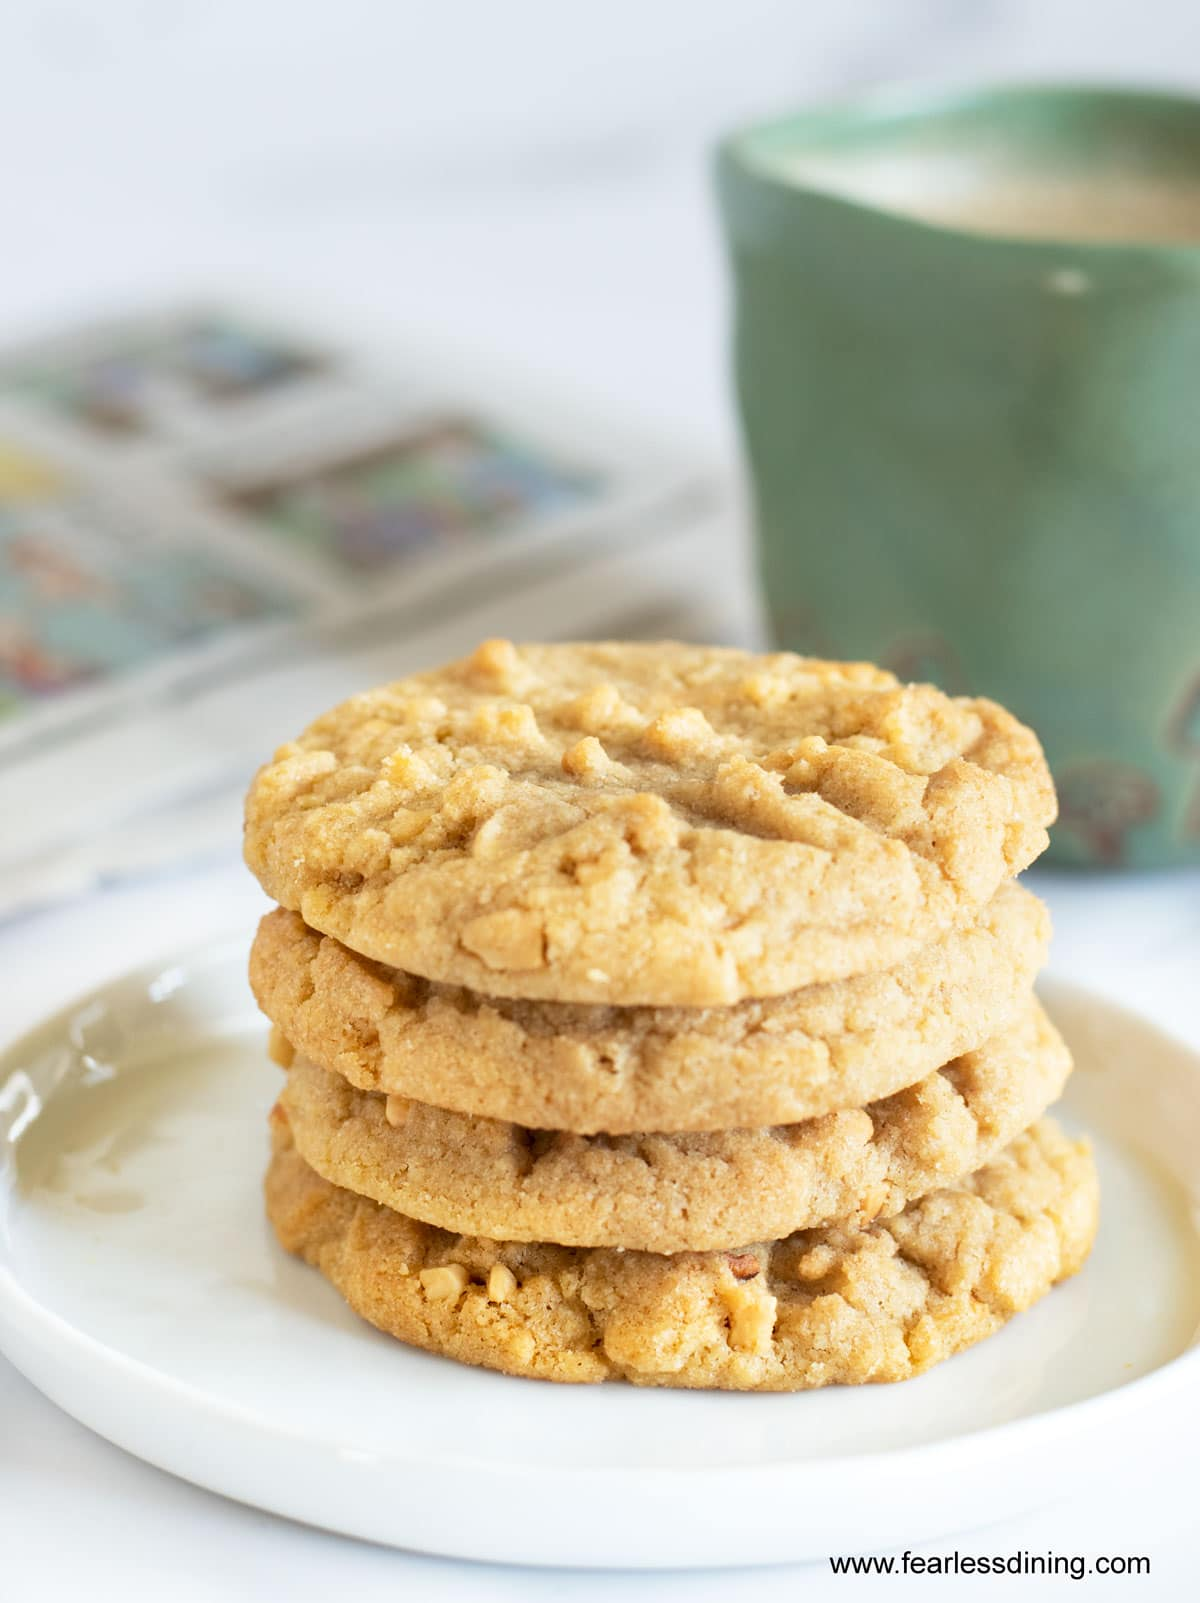 a stack of four peanut butter cookies next to a mug of coffee